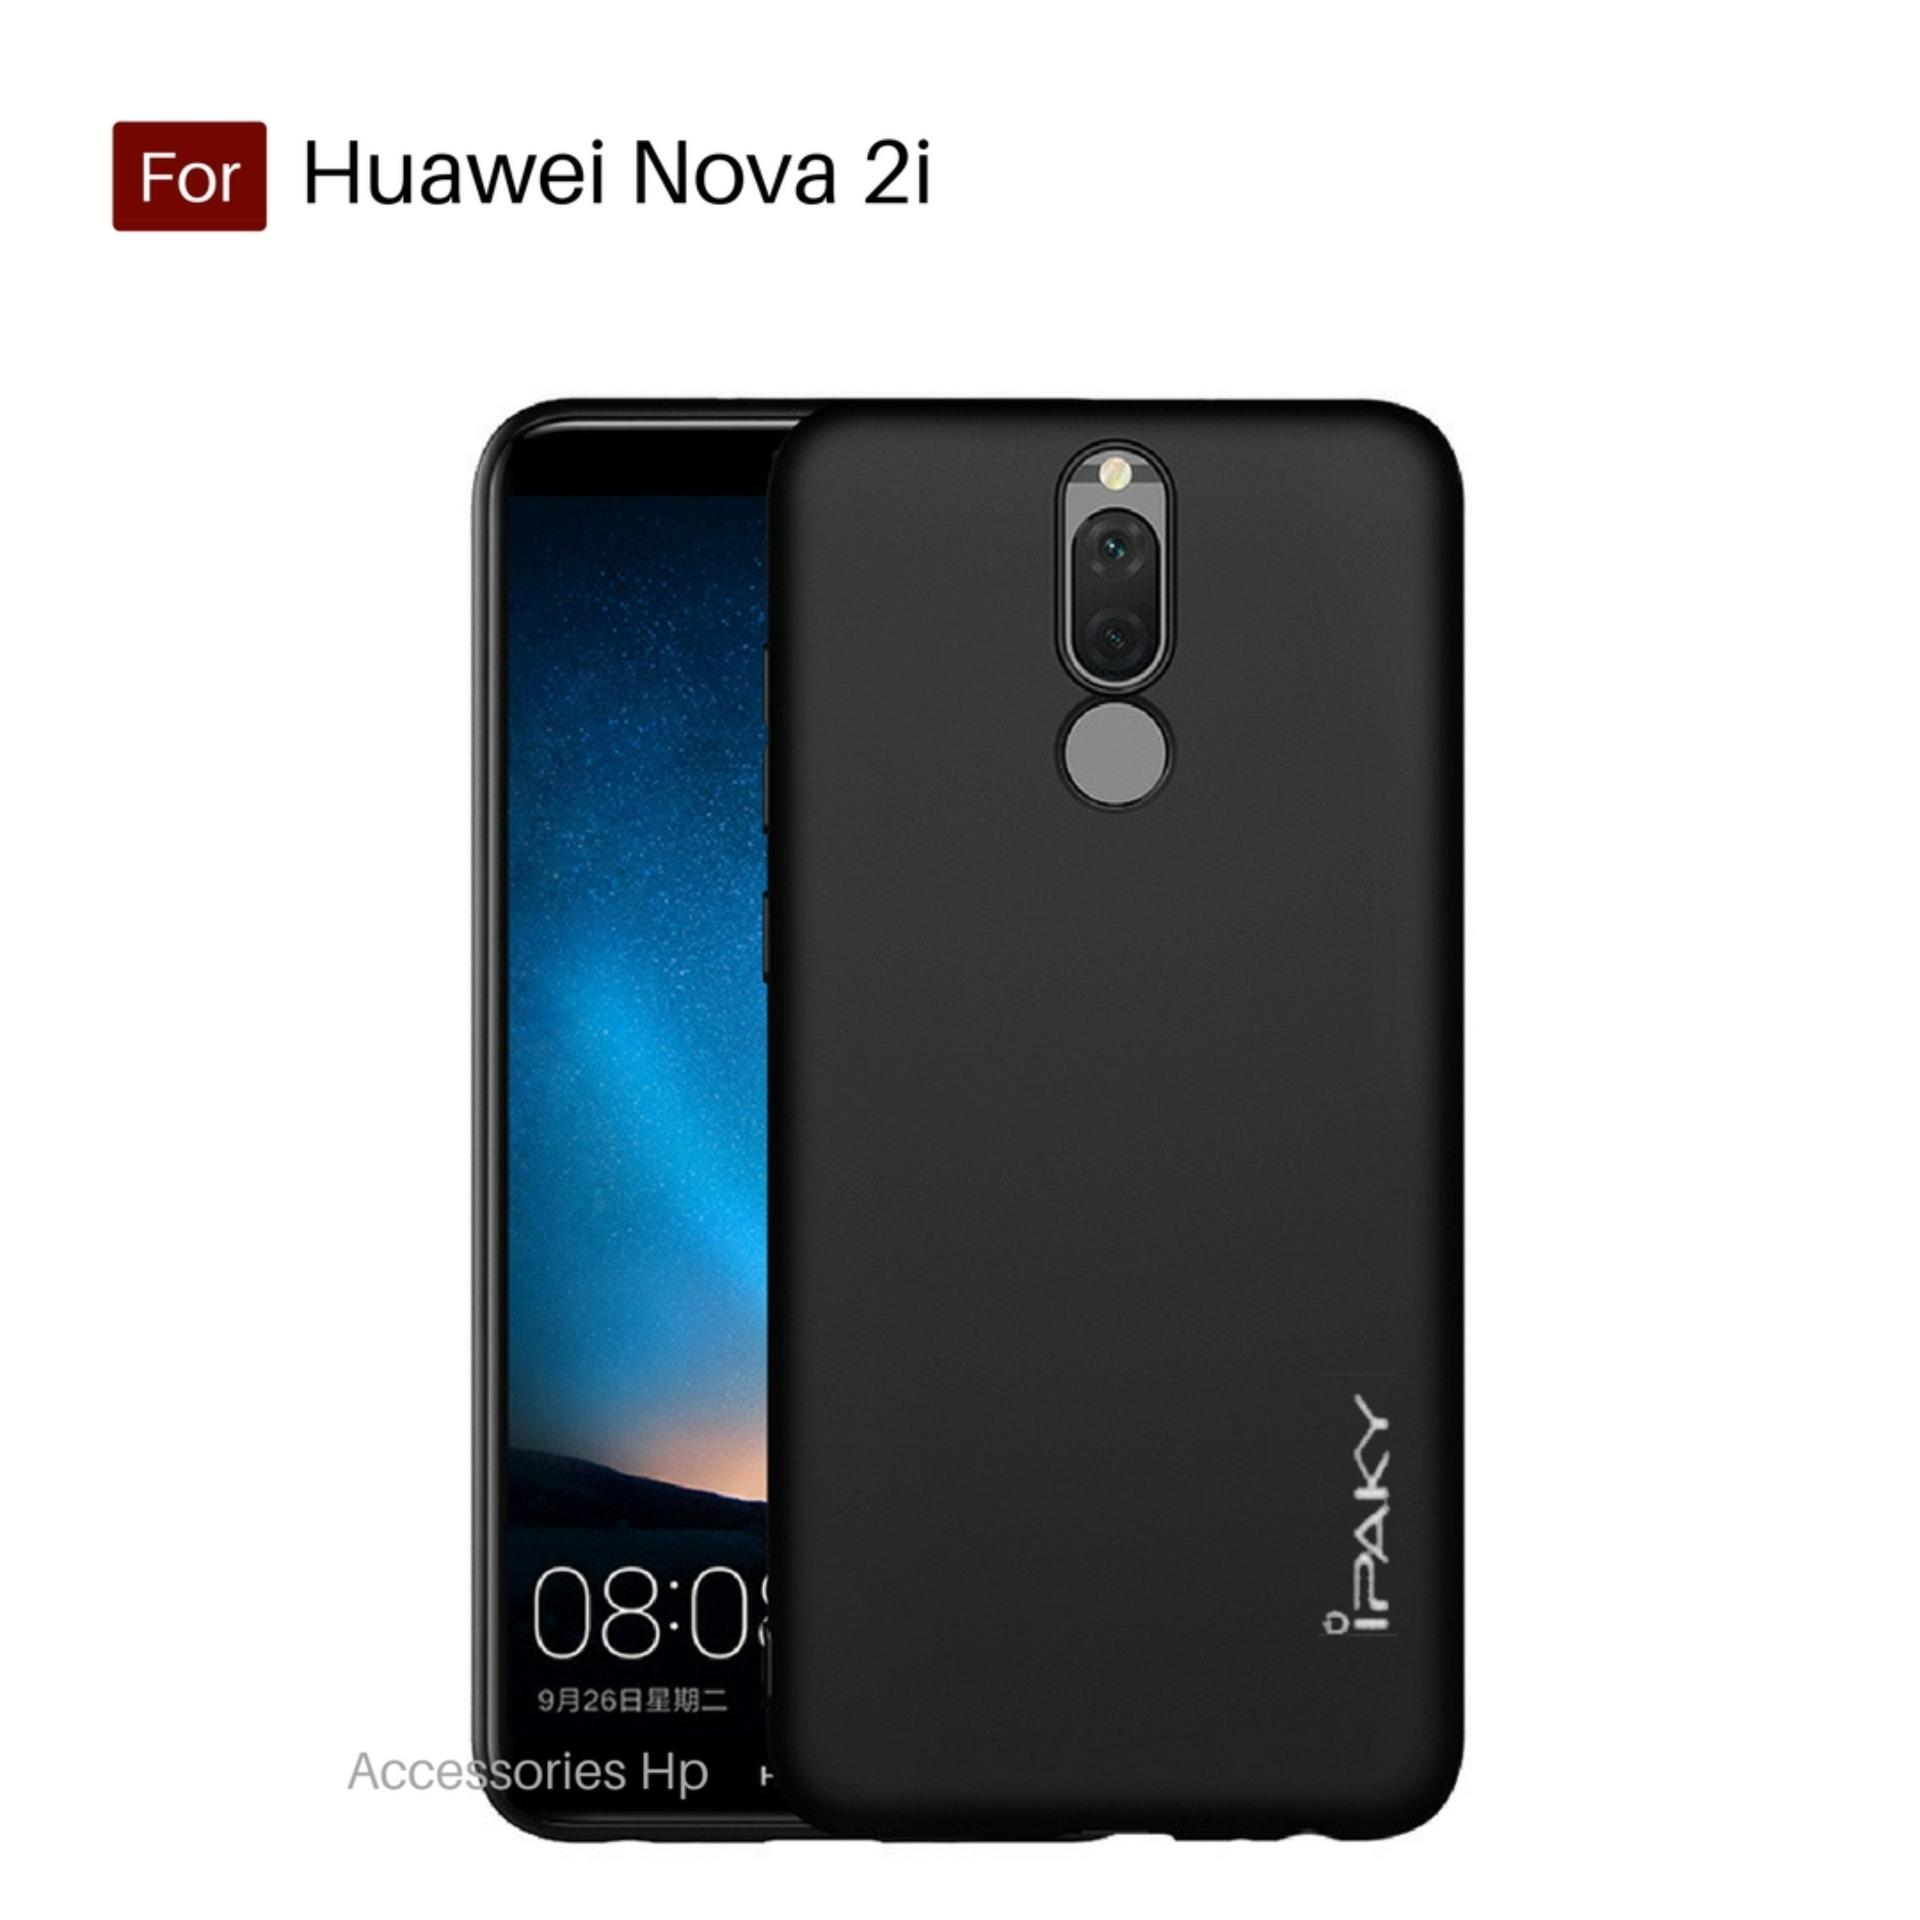 Accessories Hp iPaky Super Slim Matte Anti Fingerprint Hybrid Case For Huawei Nova 2i Black